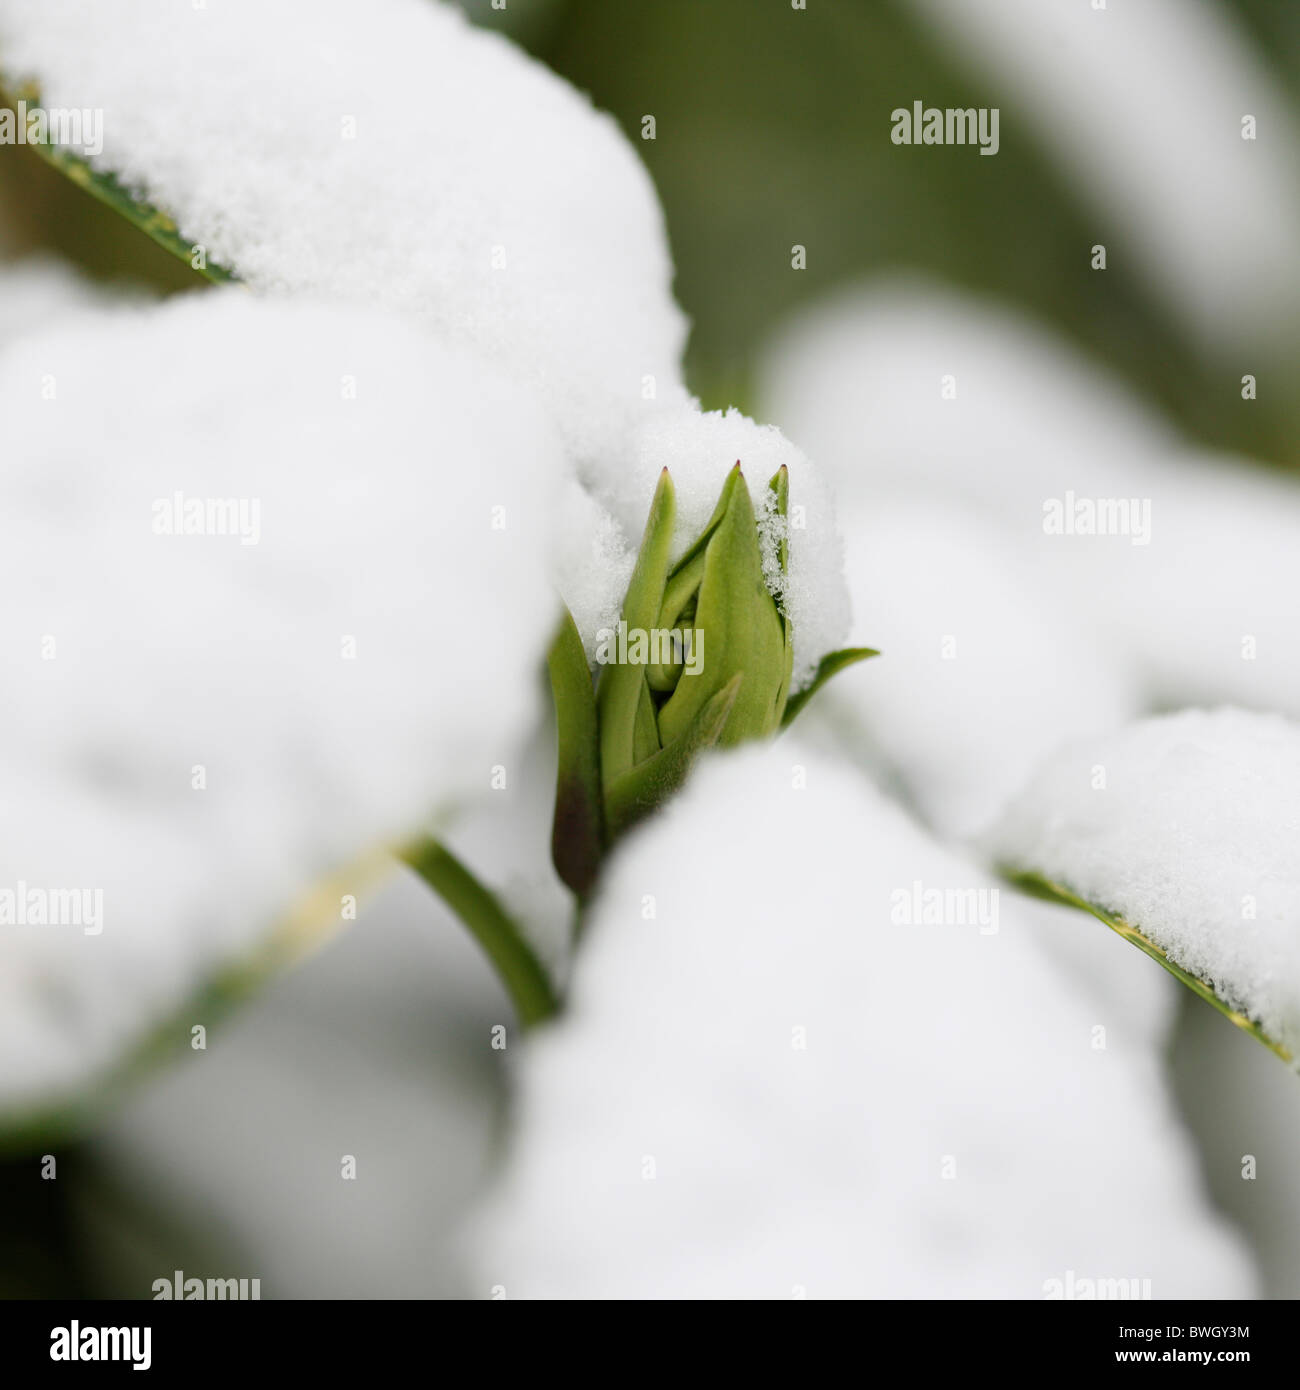 snow capped acuba japonica bud - fine art photography Jane-Ann Butler Photography JABP954 RIGHTS MANAGED - Stock Image